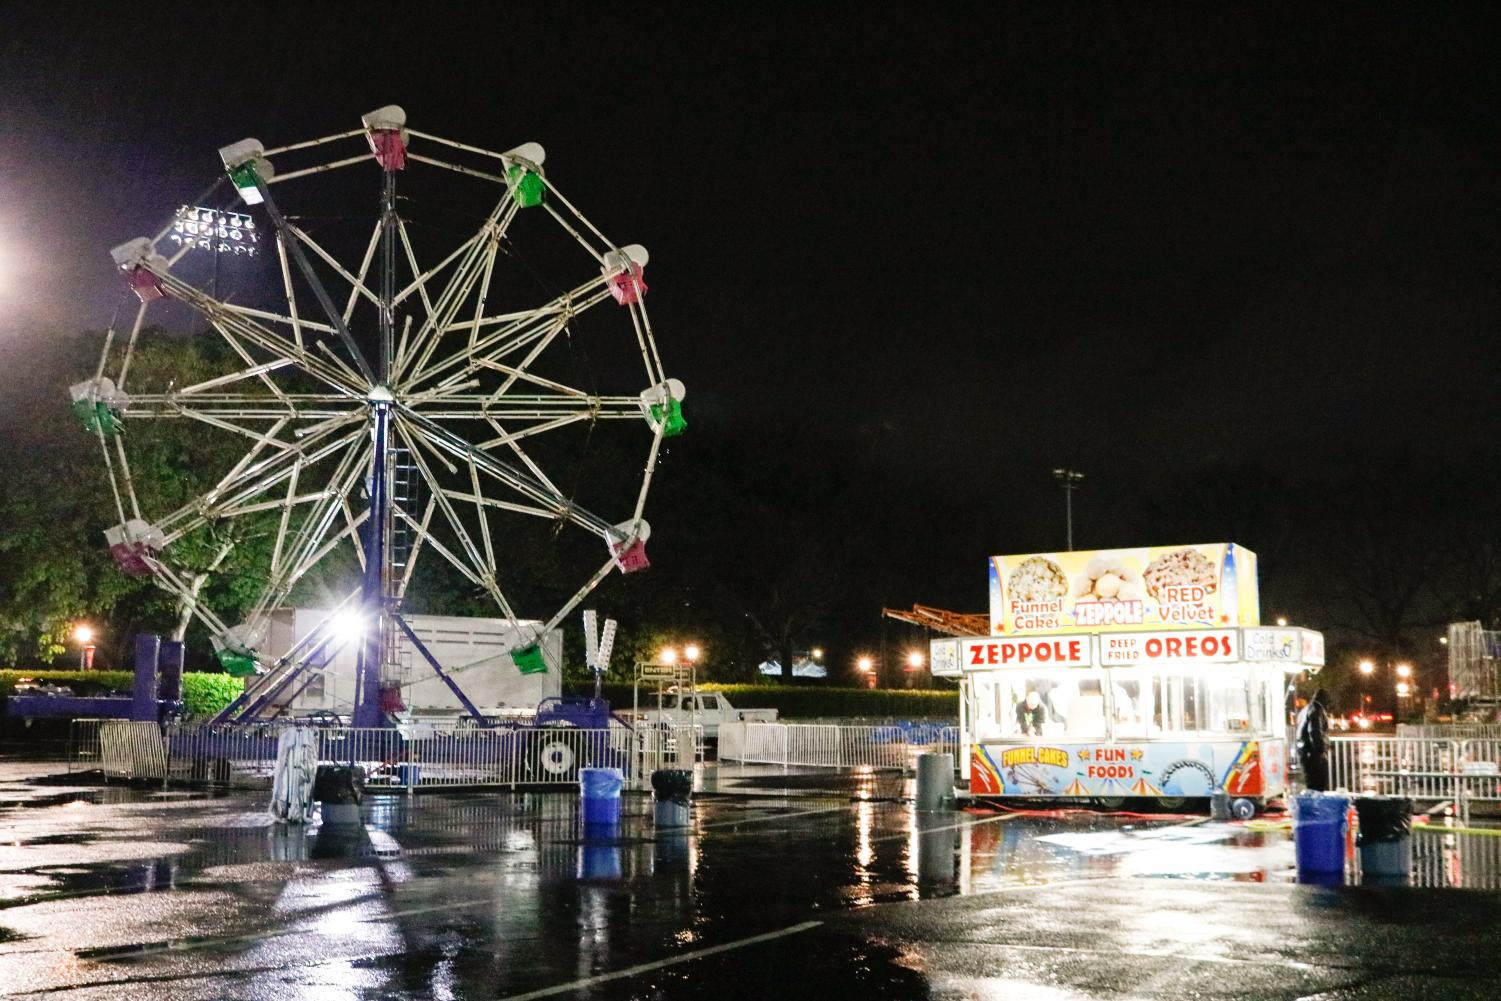 The carnival featured a ferris wheel, but did not run because of the rain. (Julia Comerford/ The Fordham Ram)